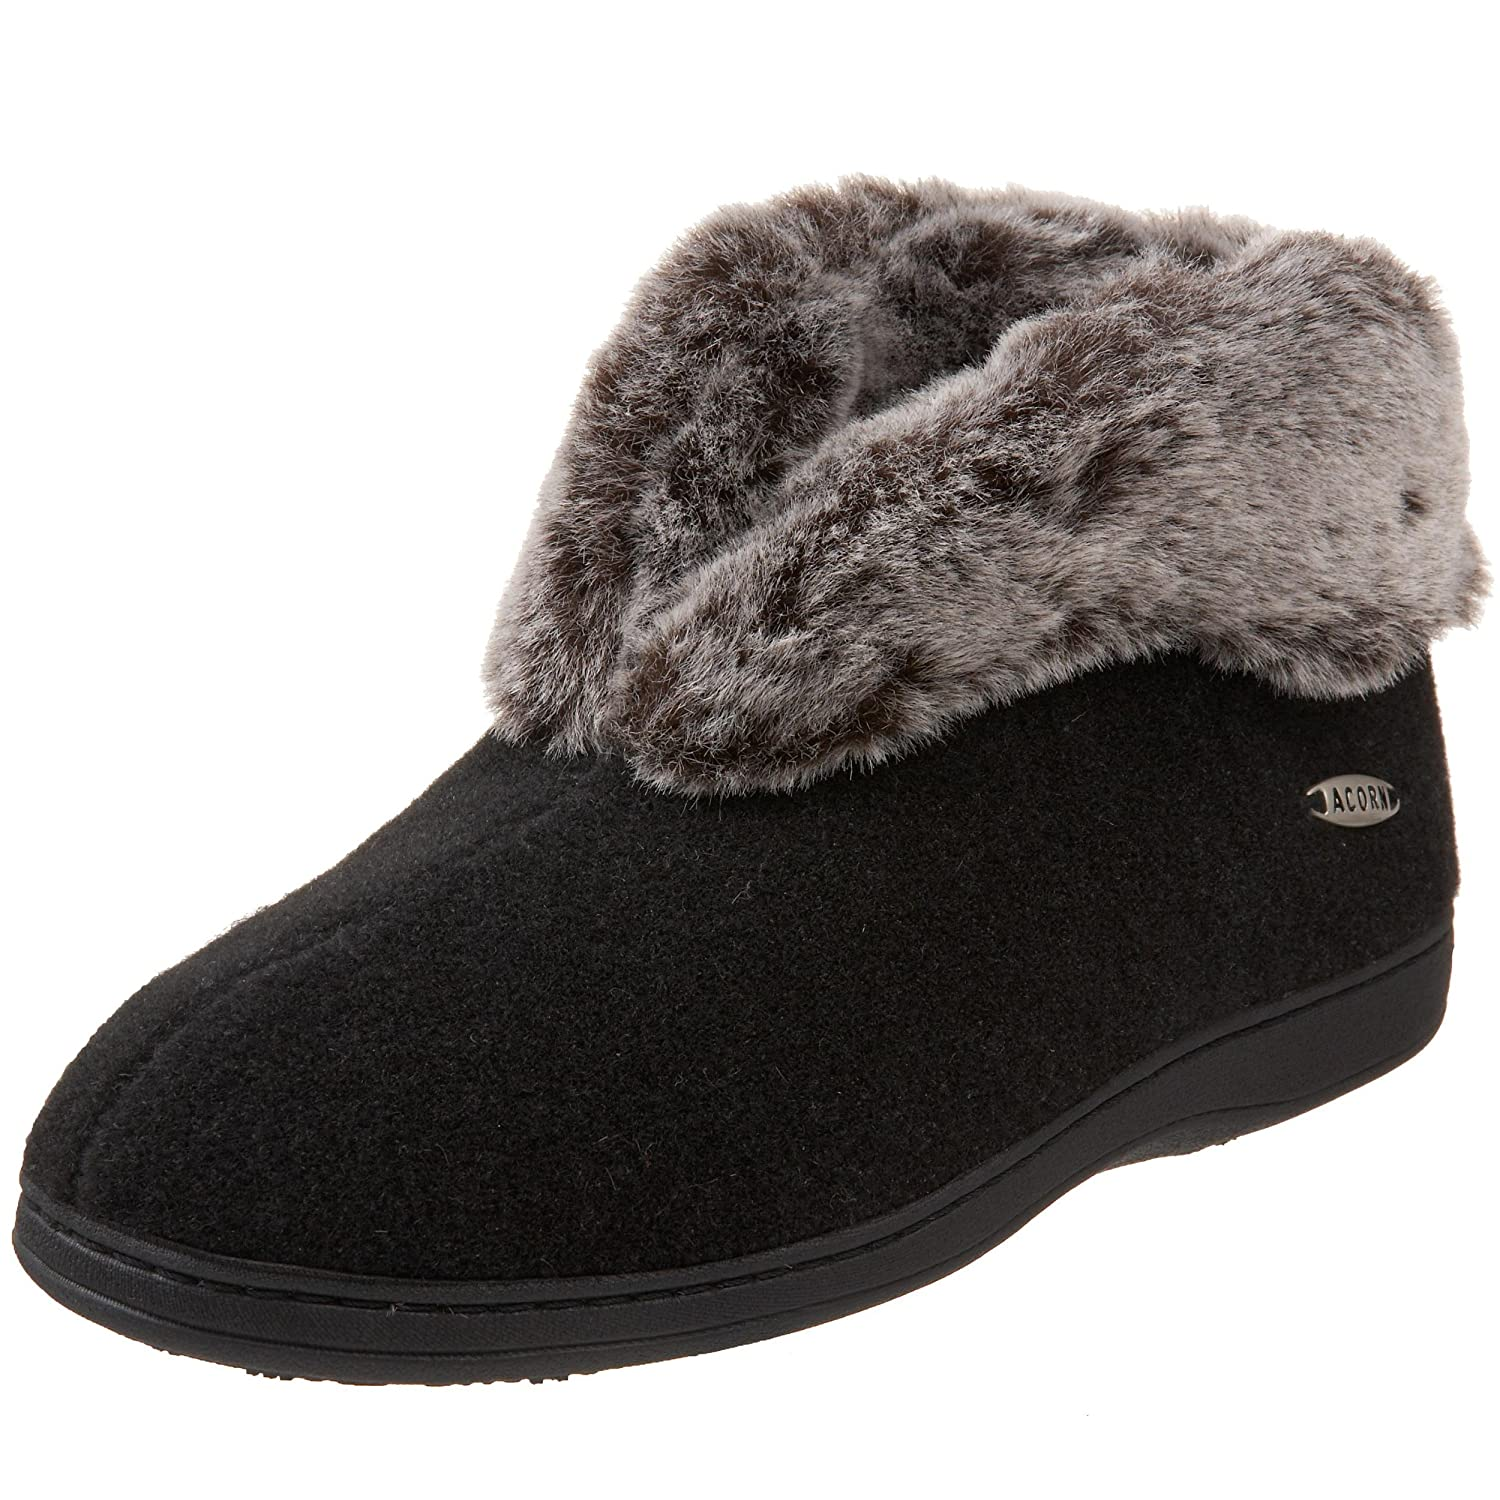 ACORN Women's Faux Chinchilla Slipper Bootie